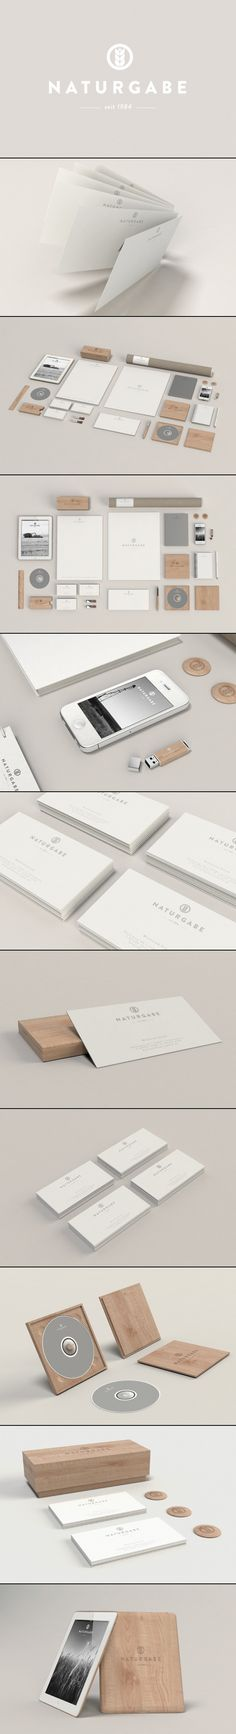 Naturgabe #identity #packaging #branding PD